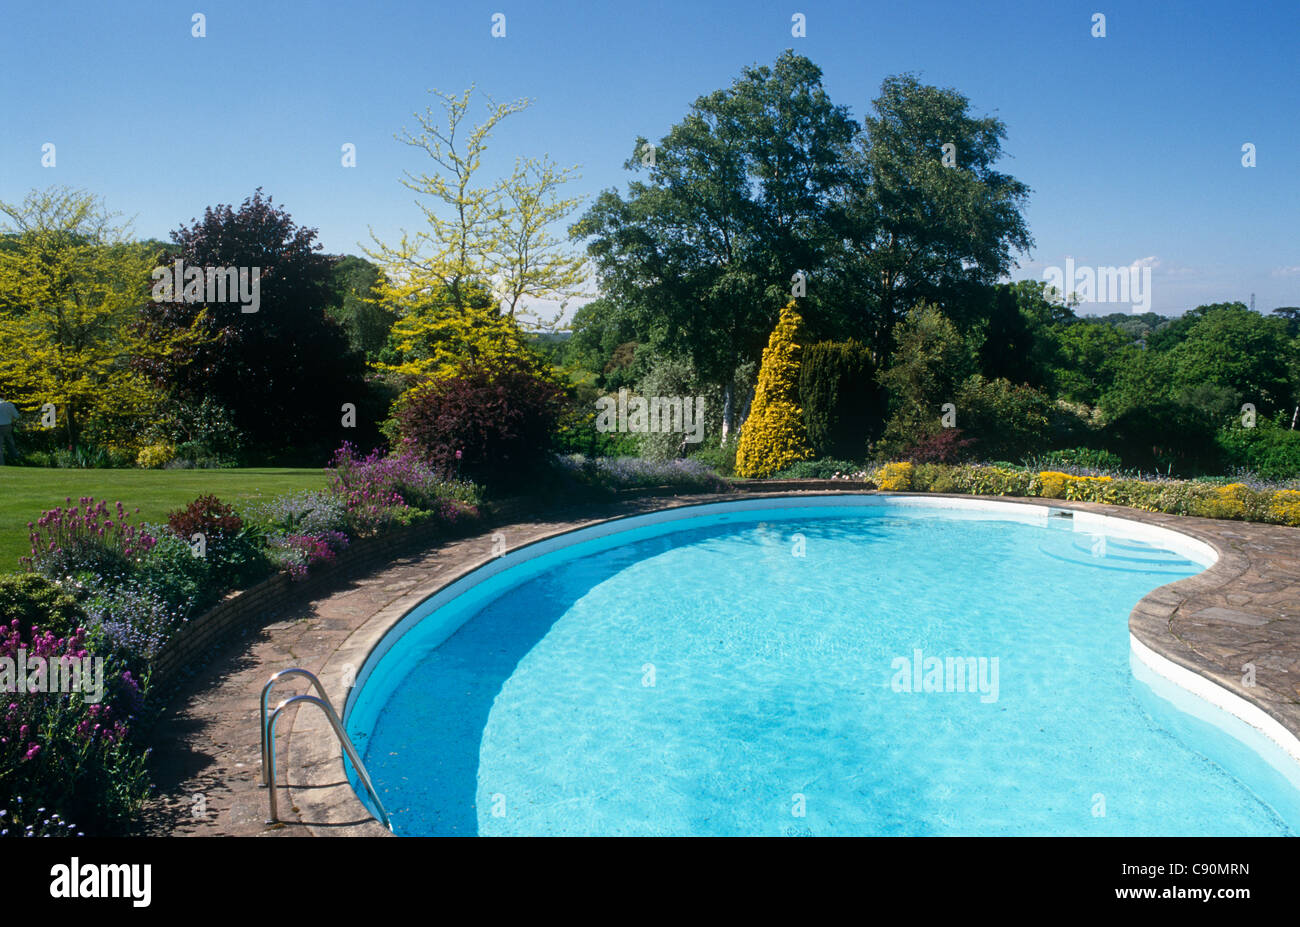 Many houses now have swimming pools in the gardens in the Home counties like Buckinghamshire, England. - Stock Image